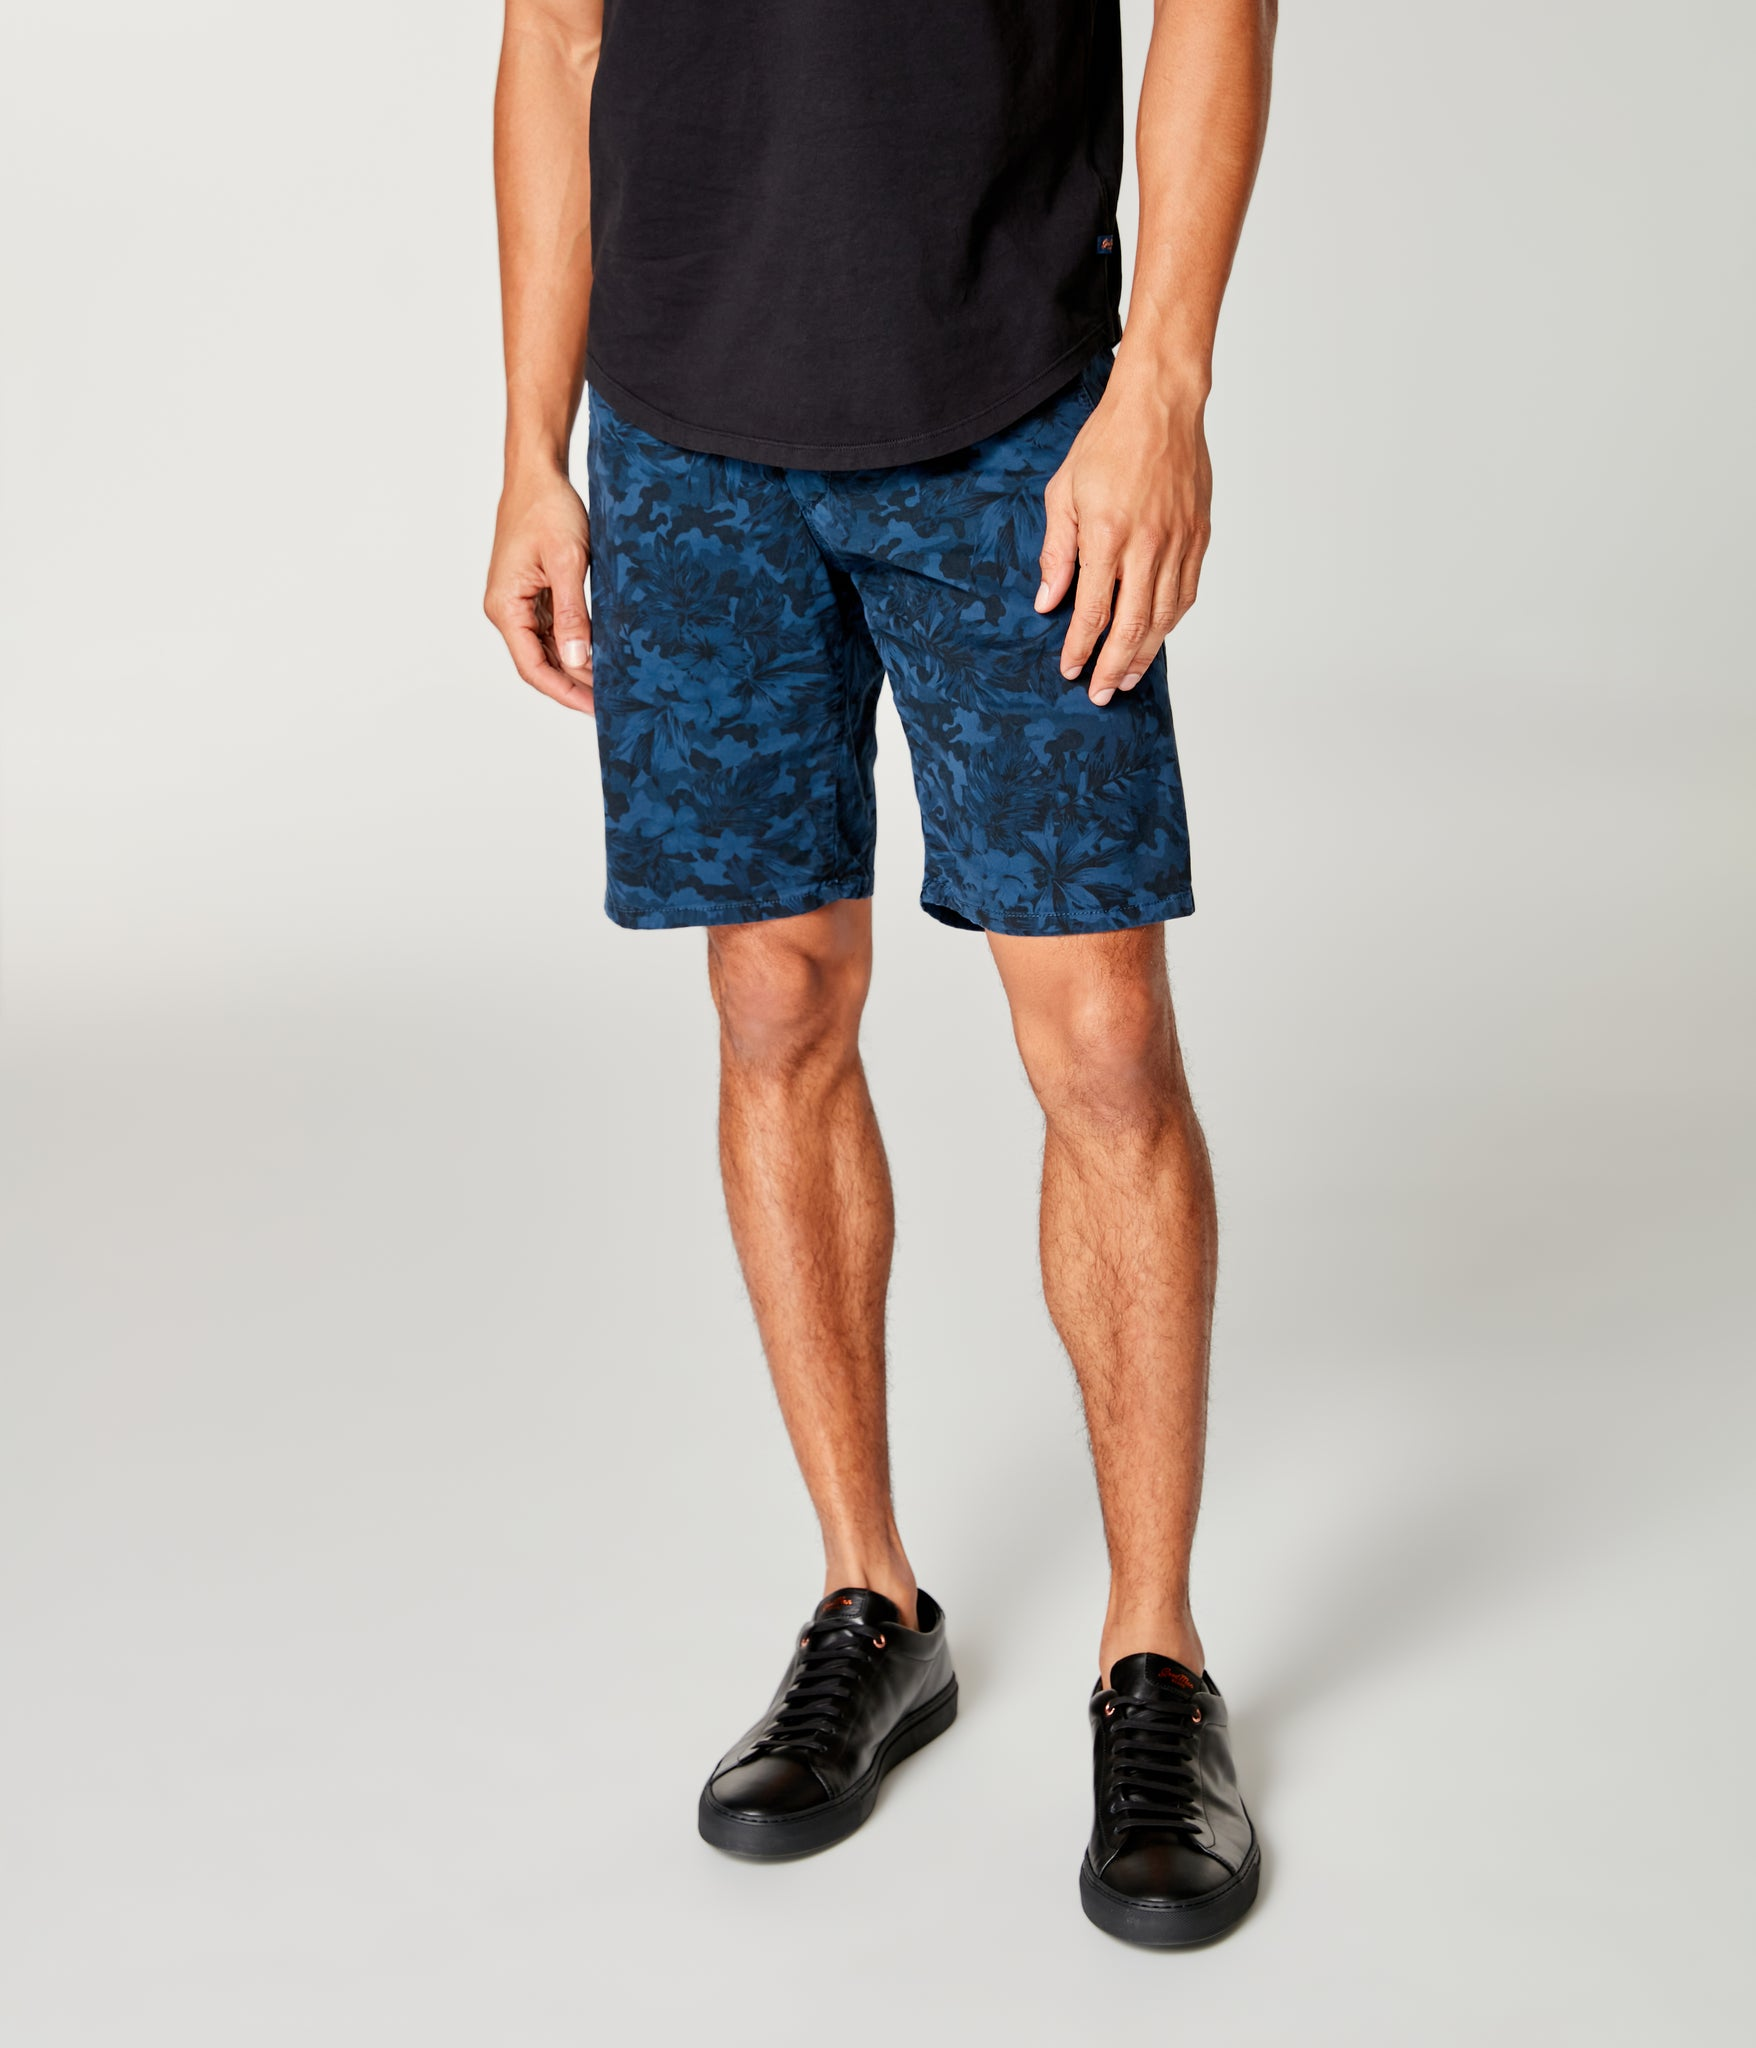 Monaco Stretch Twill Camo Wrap Short - Denim Blue